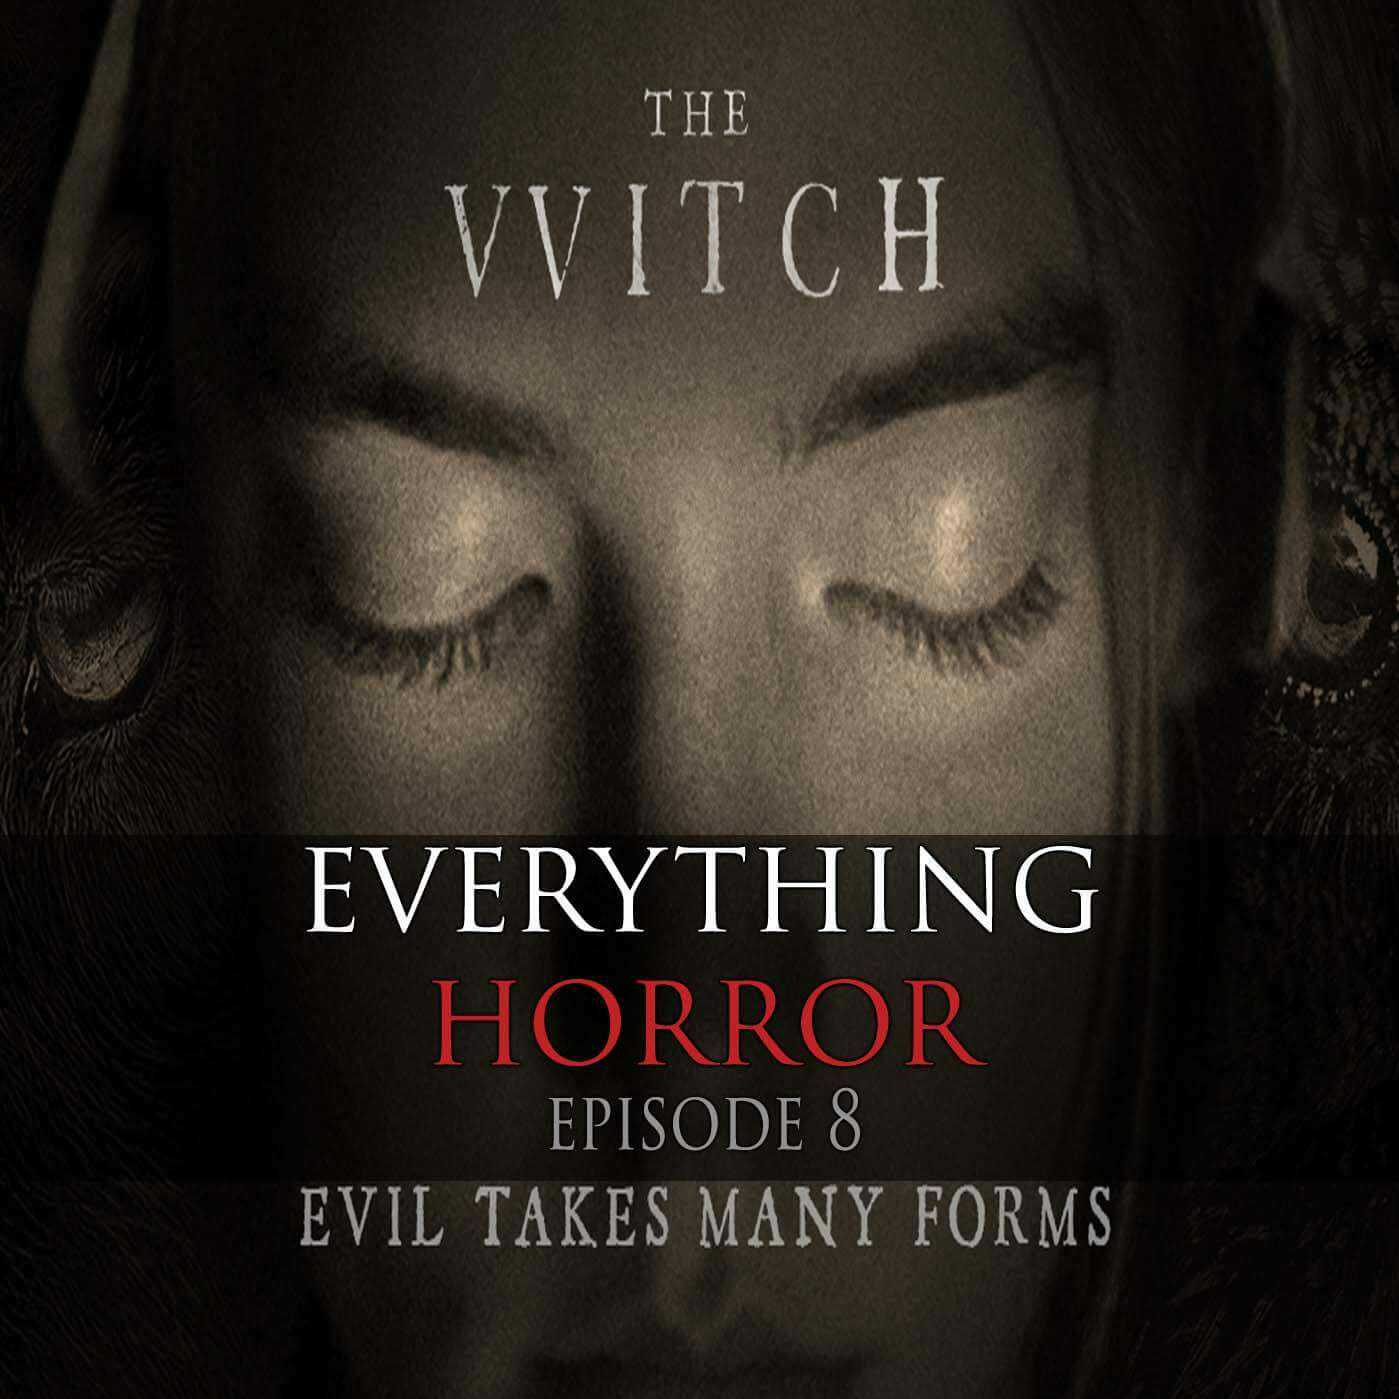 S1: Episode 8: The Witch - Evil Takes Many Forms